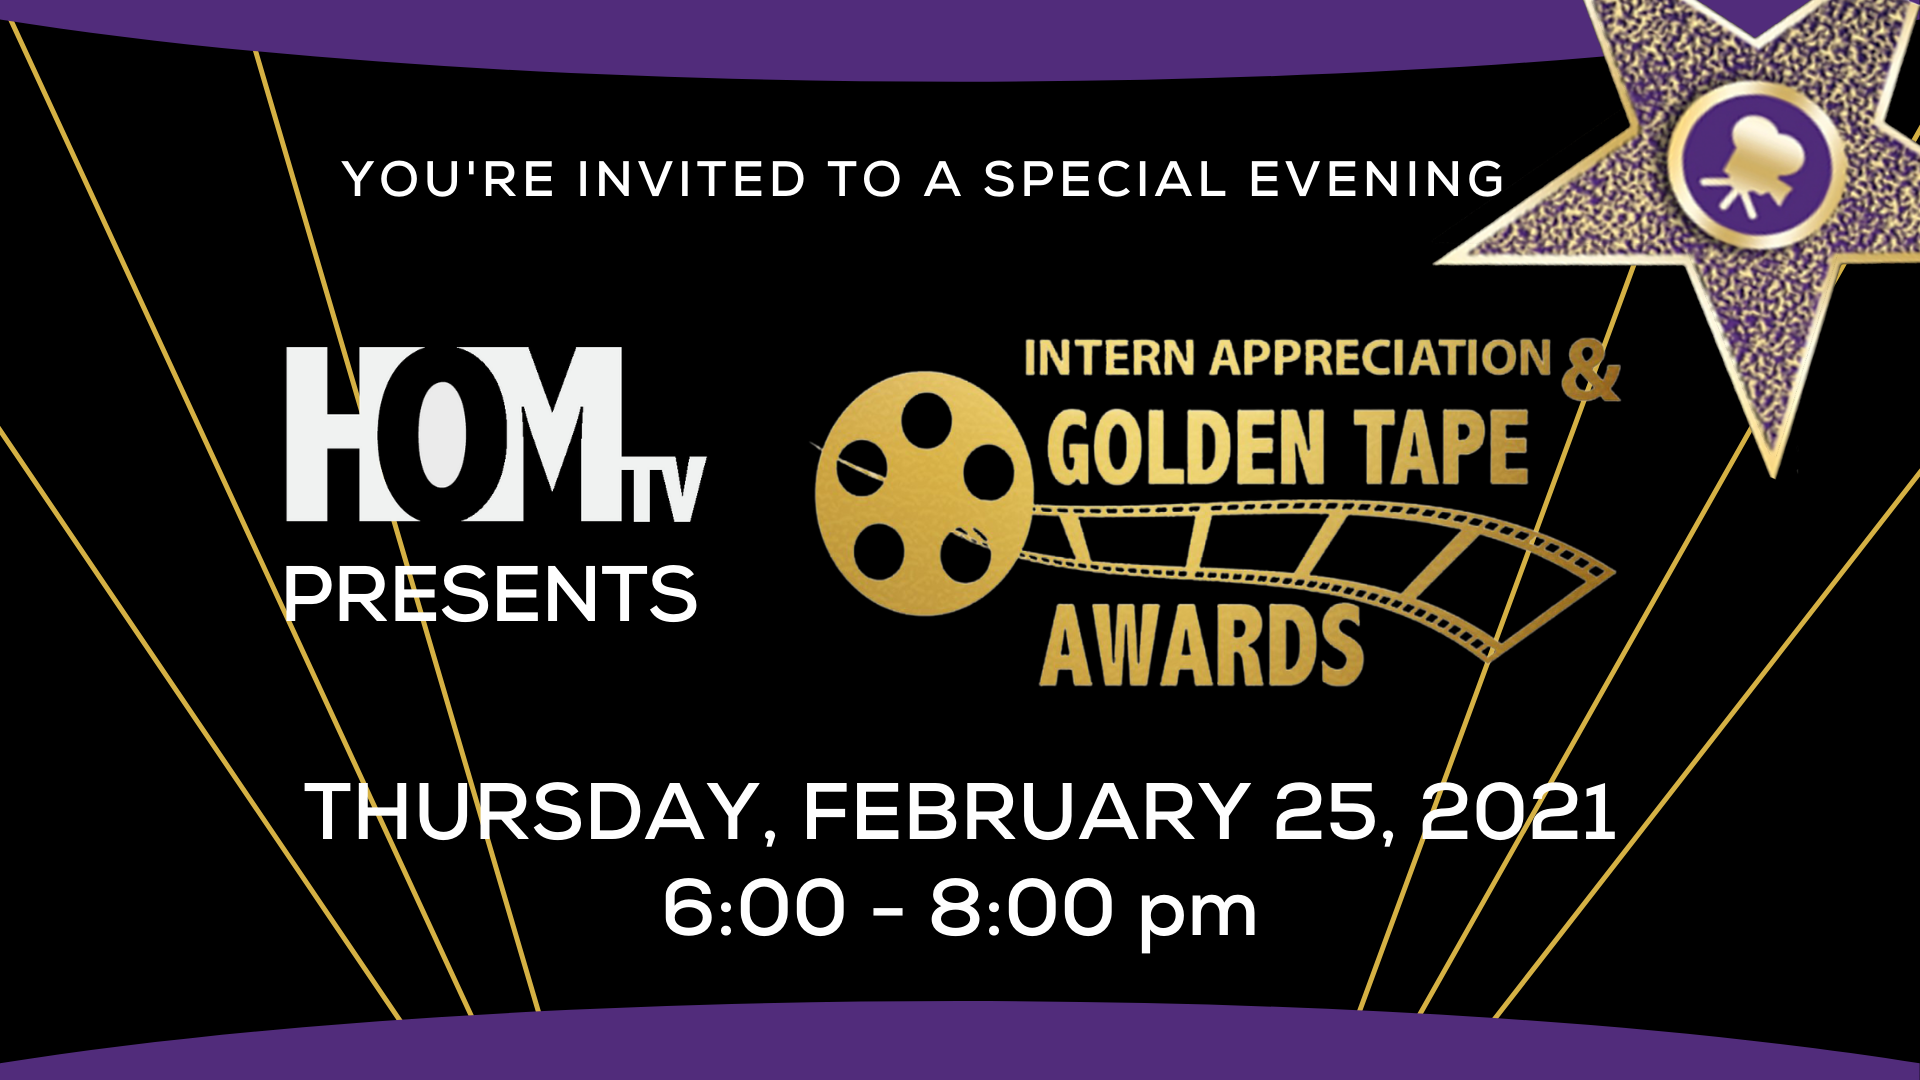 Intern Appreciation & Golden Tape Awards Ceremony